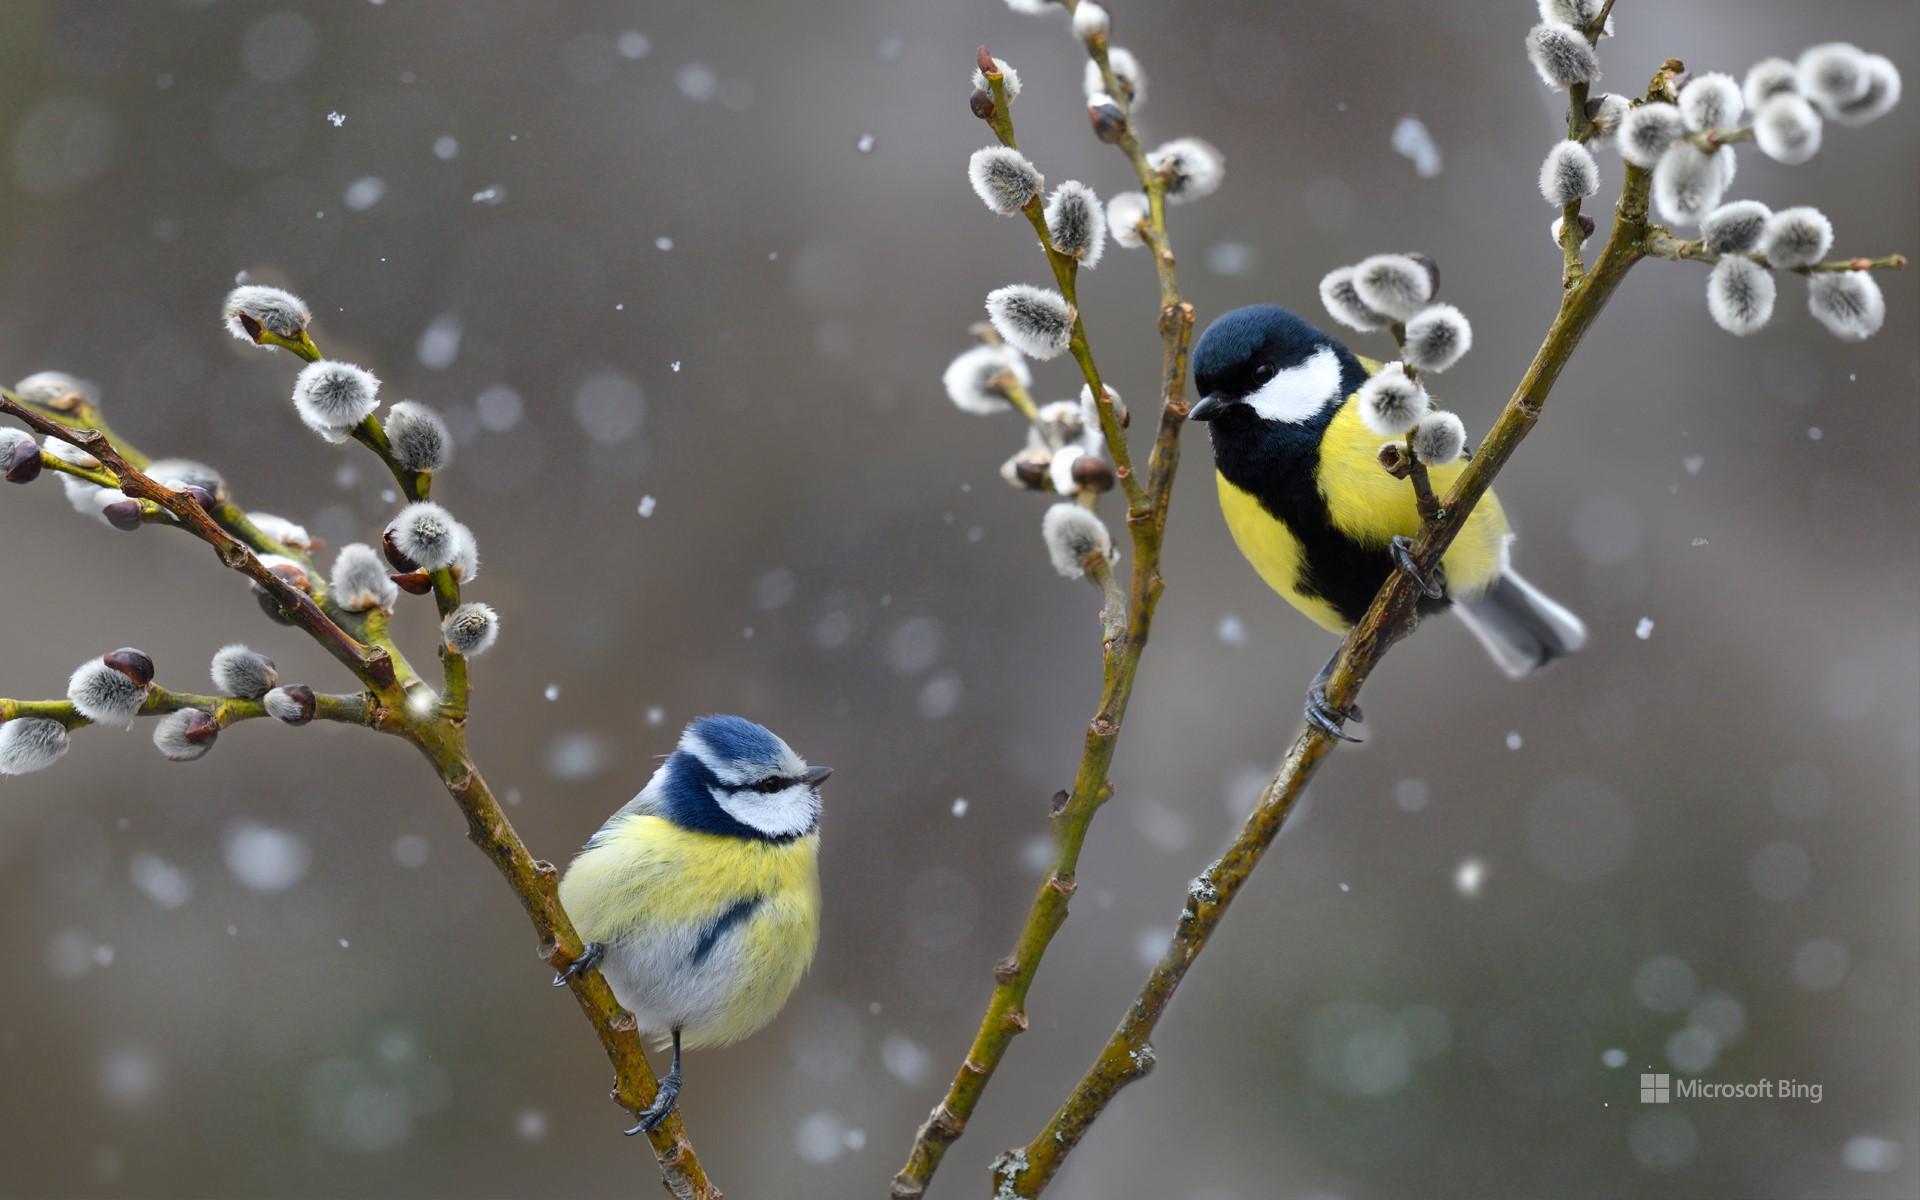 Blue tit (left) and great tit in snowfall, Northern Vosges Regional Nature Park, France